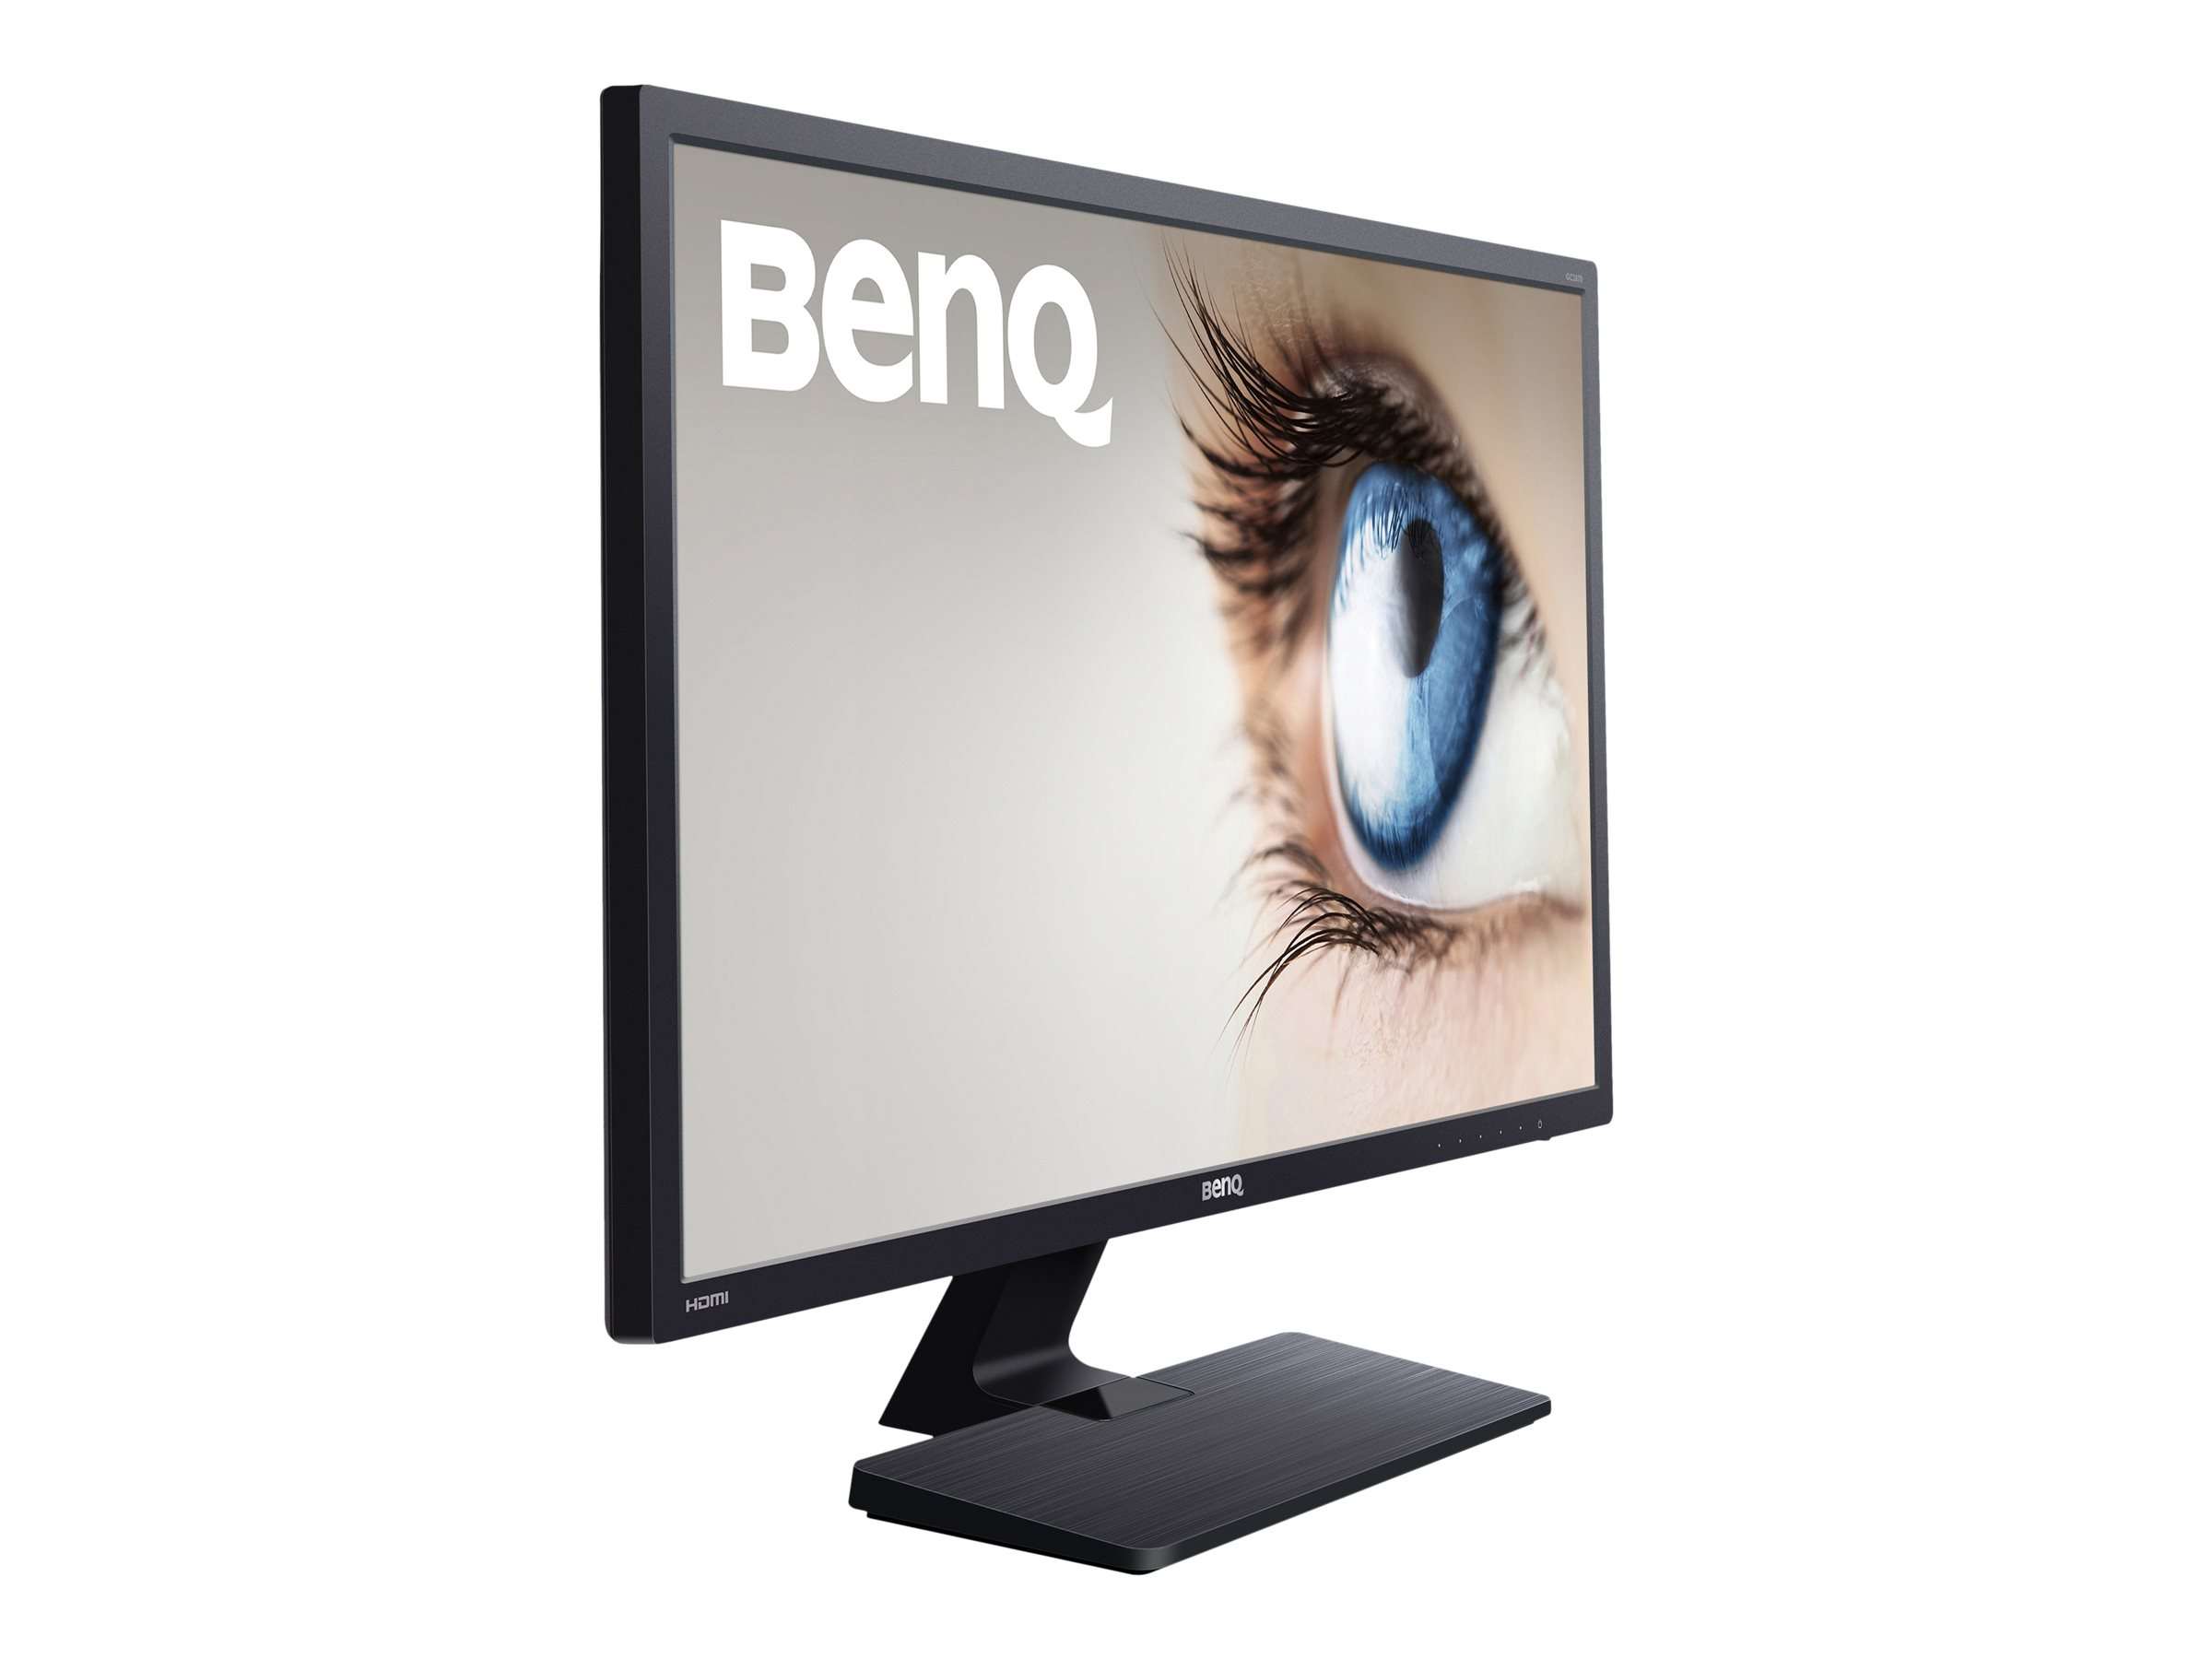 "BenQ GC2870H - Écran LED - 28"" - VA - 300 cd/m² - 3000:1 - 5 ms - HDMI, VGA - noir brillant"